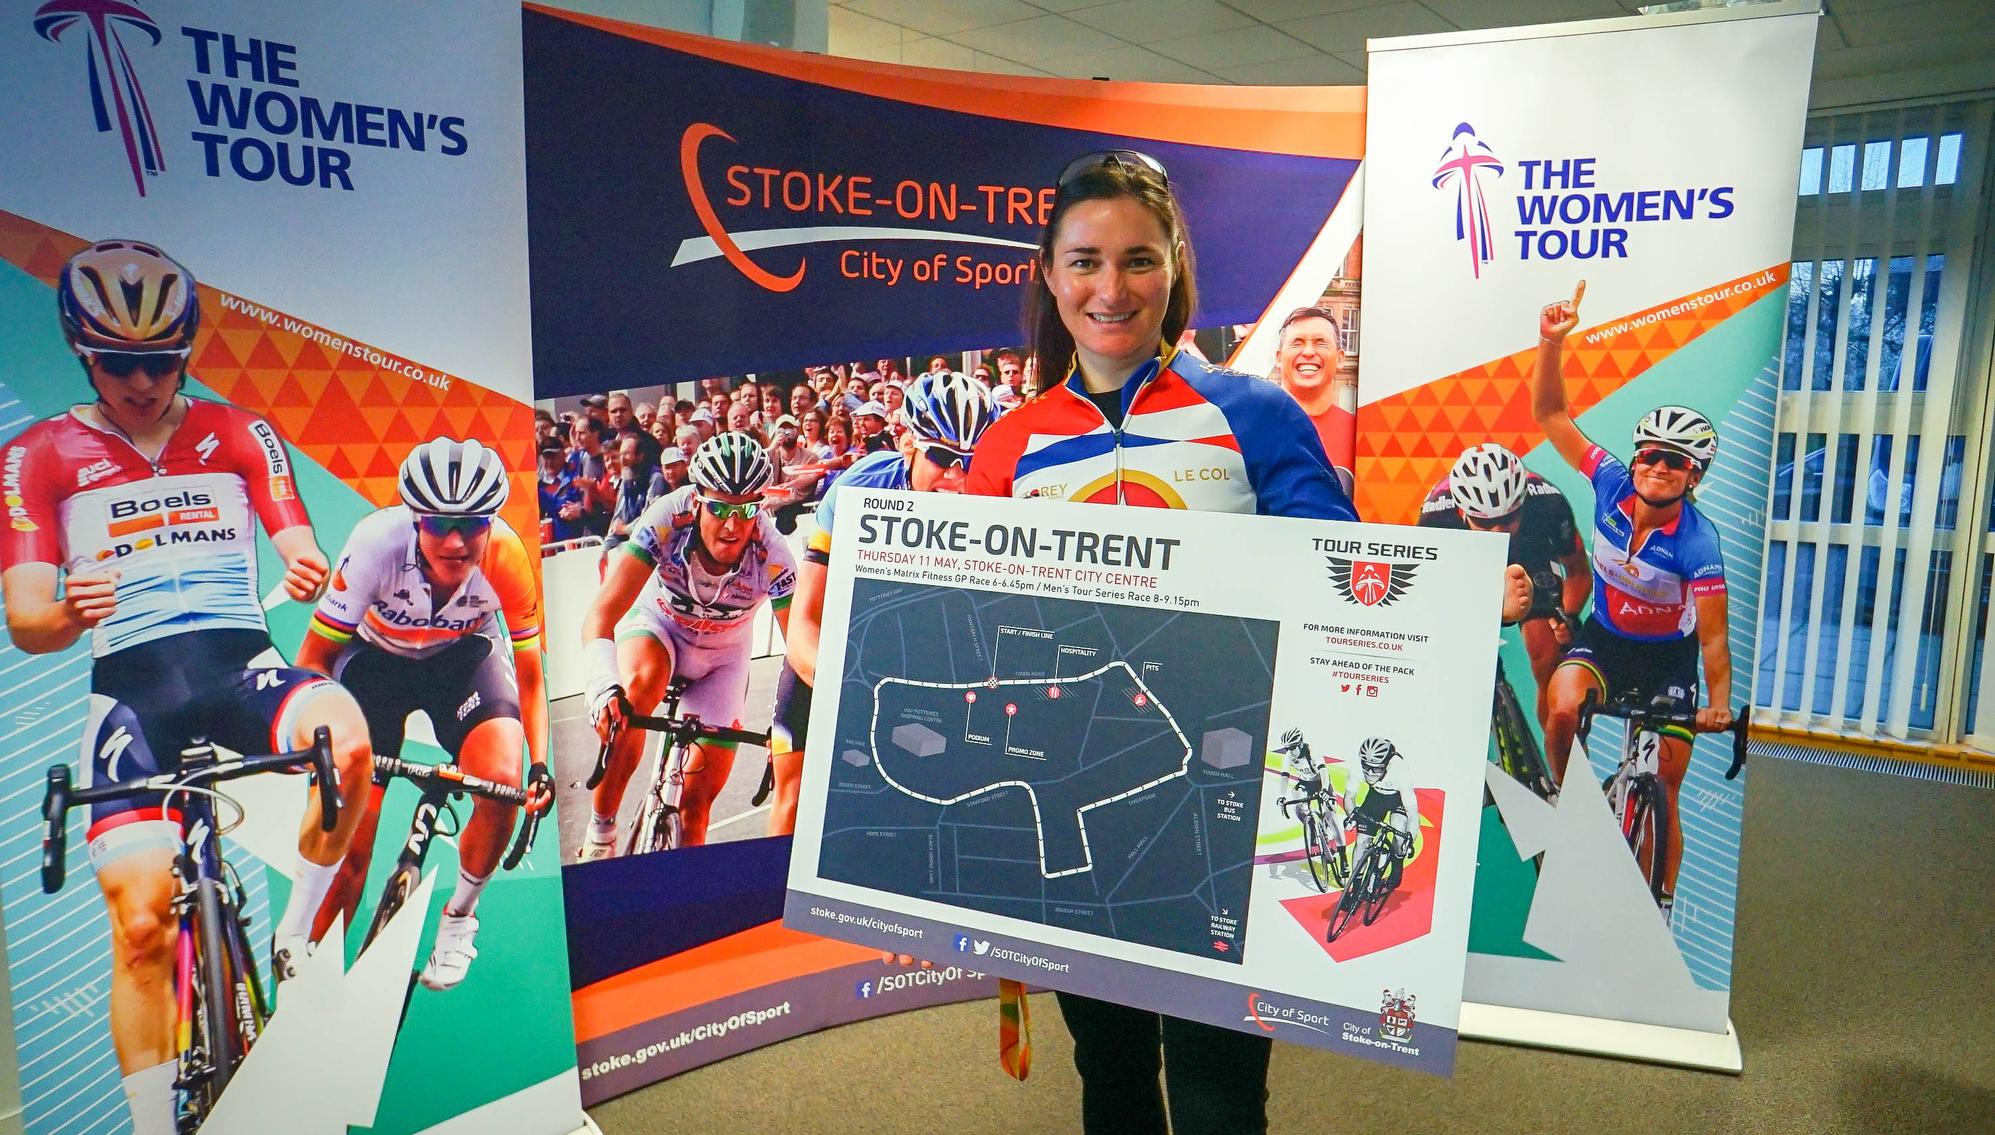 Dame Sarah Storey hails Stoke-on-Trent's sporting prowess as they get set to welcome Women's Tour